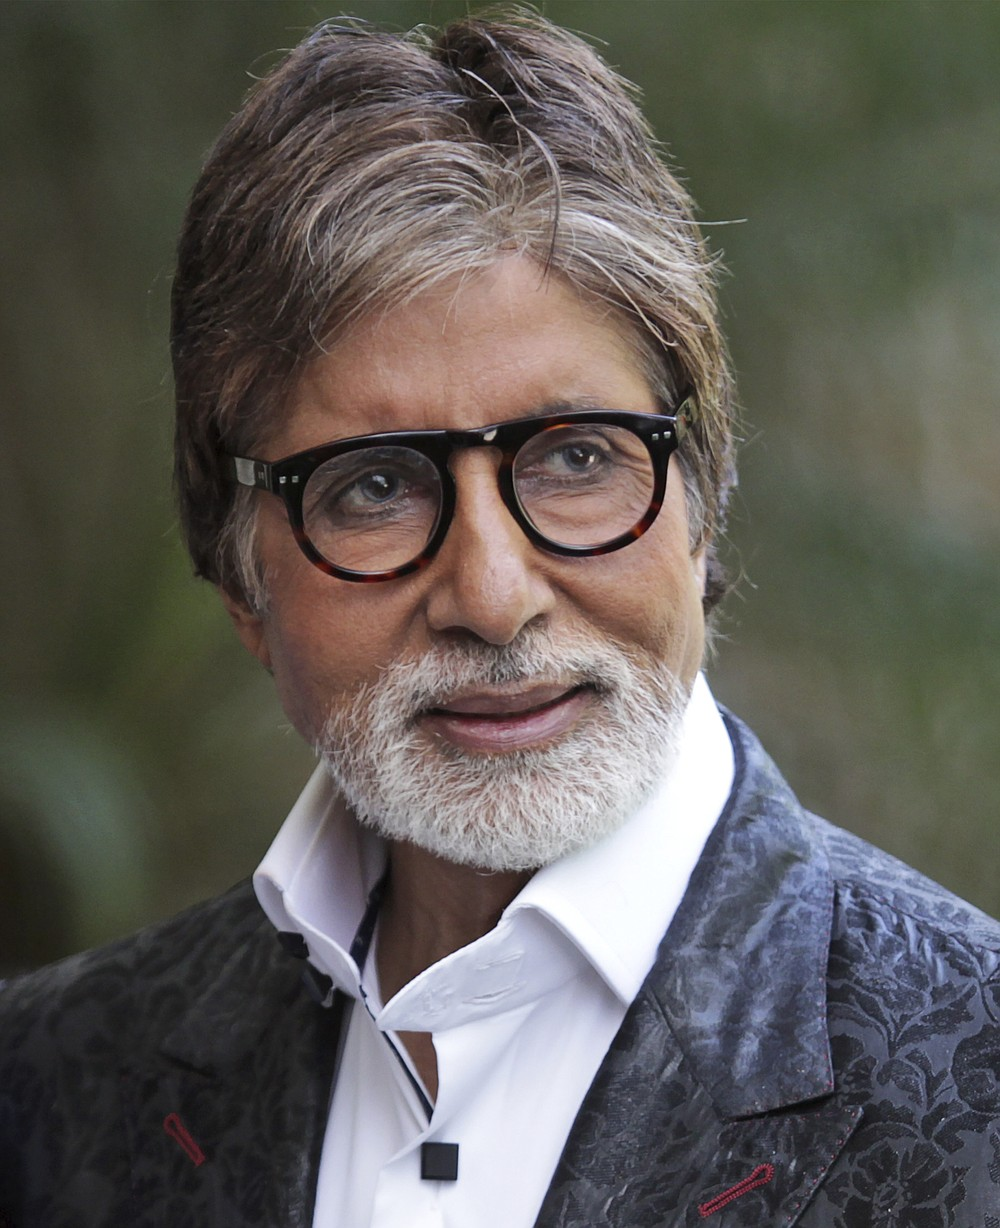 "FILE- In this Wednesday, Aug 21, 2013, file photo, Bollywood actor Amitabh Bachchan attends a promotional event for his upcoming movie ""Satyagraha"" in New Delhi, India. Bachchan has tested positive for COVID-19 and hospitalized in Mumbai, India's financial and entertainment capital. In a tweet on Saturday, July 11, 2020, Bachchan, 77, said his family and staff have also undergone tests and results are awaited. (AP Photo/Tsering Topgyal, File)"